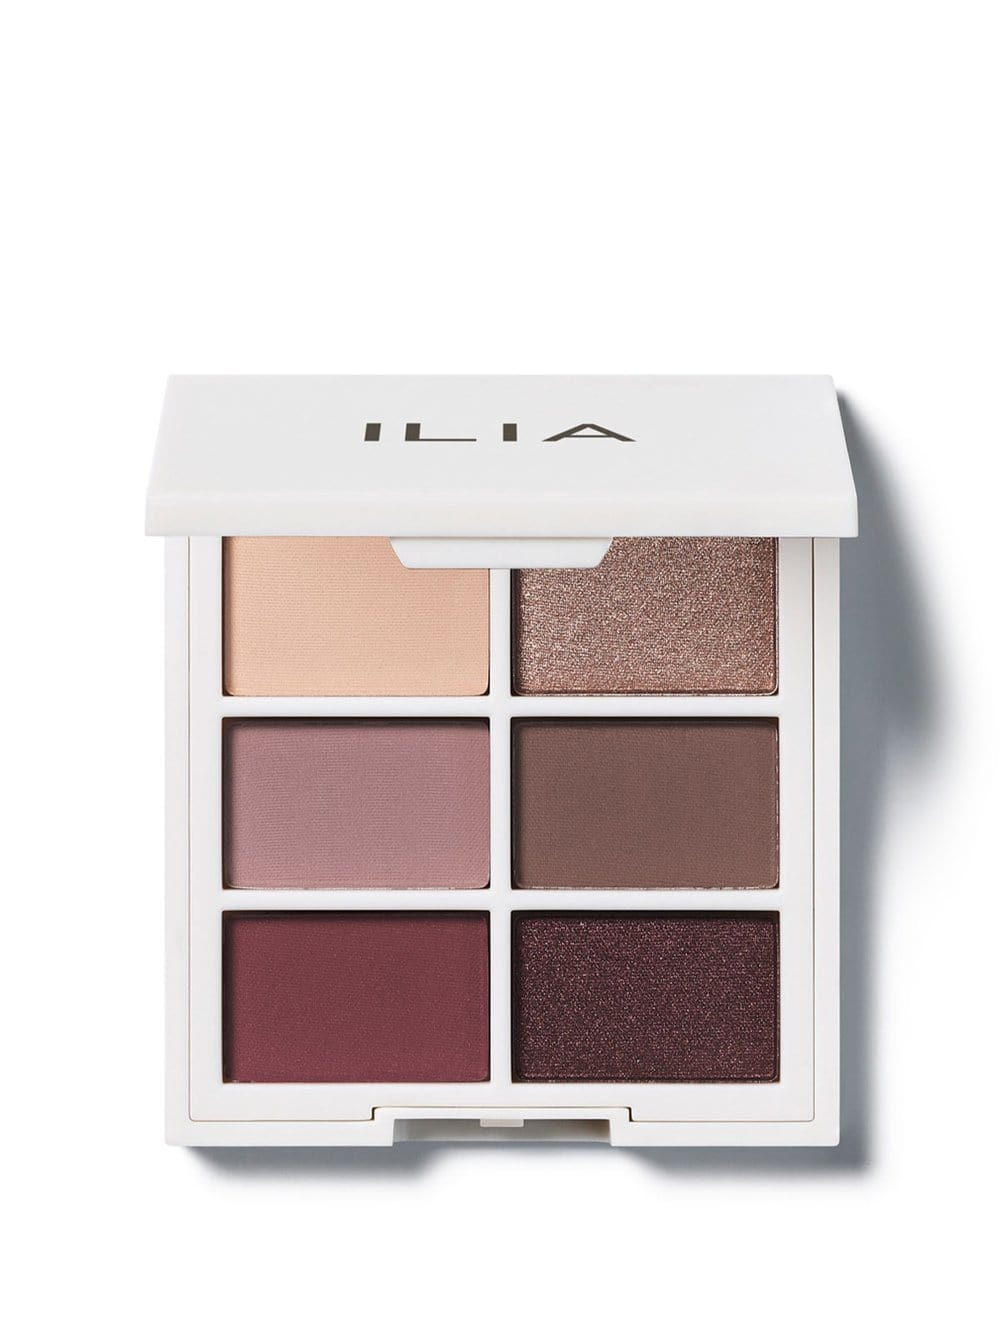 The Necessary Eyeshadow Palette - Cool Nude - The Natural Beauty Club